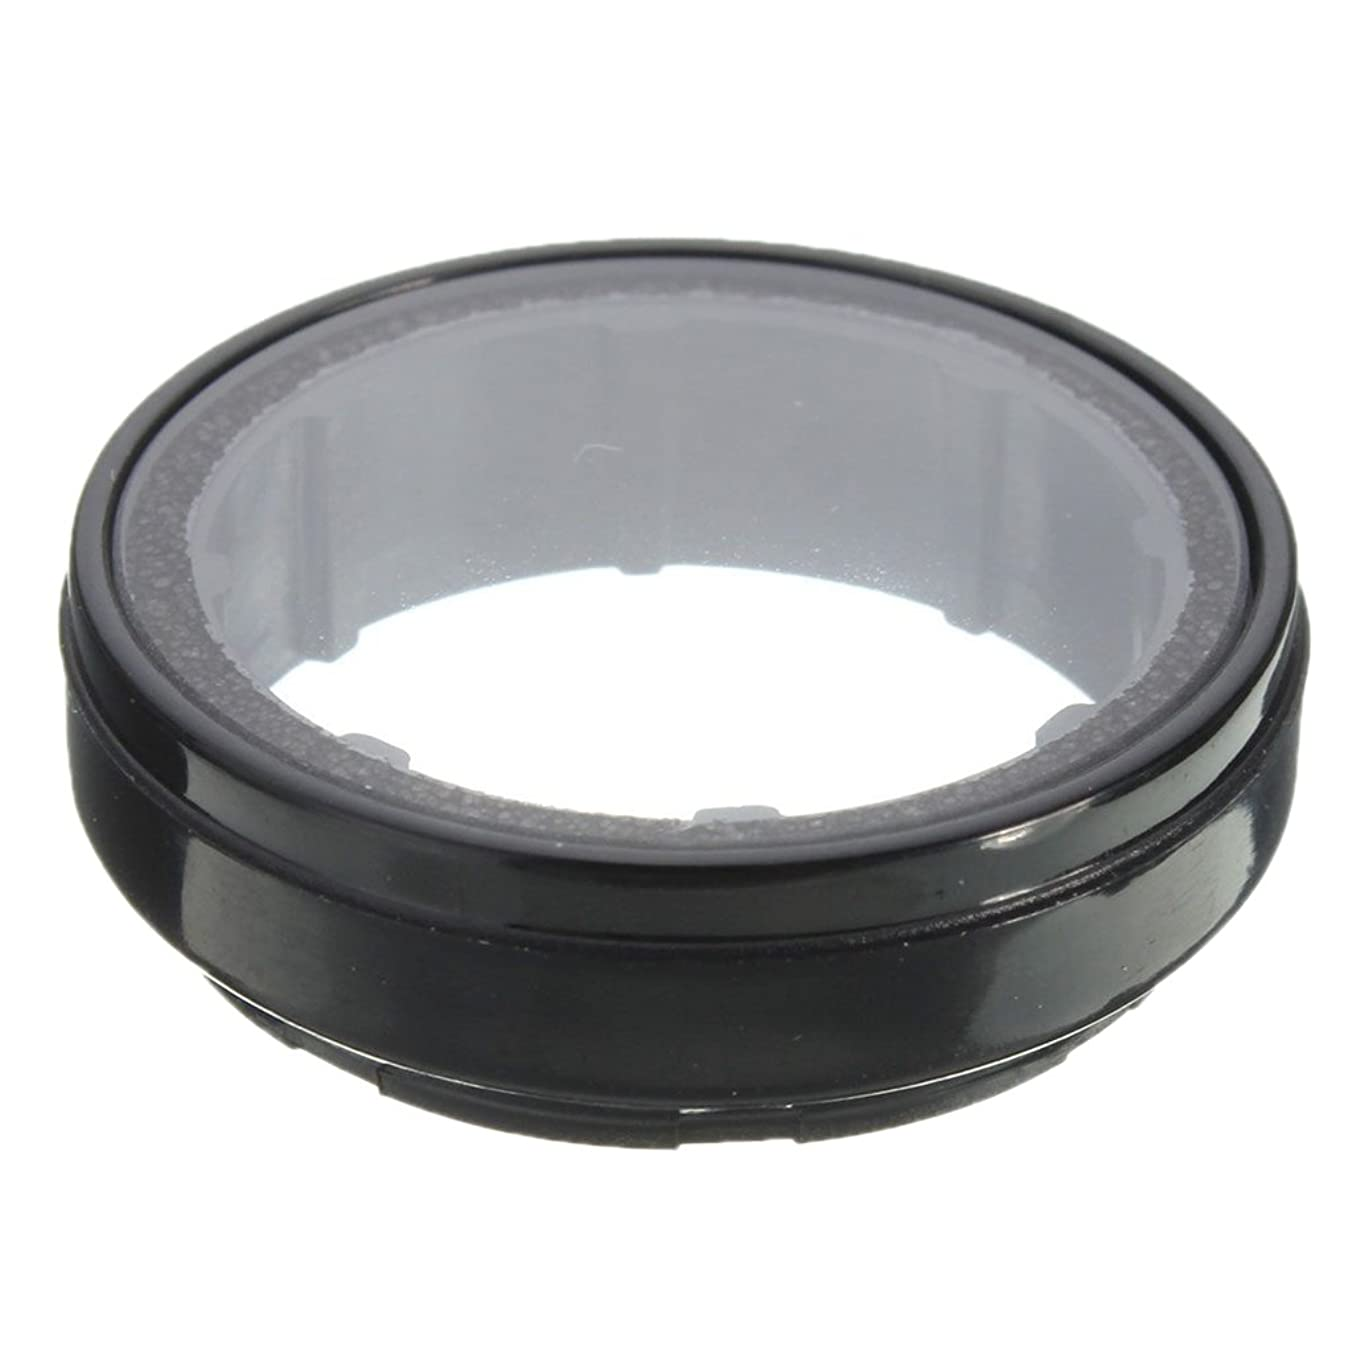 Jili Online Replacement Protection Lens Cap Adapter Ring 23mm Protector for GoPro Hero 3 3+ 4